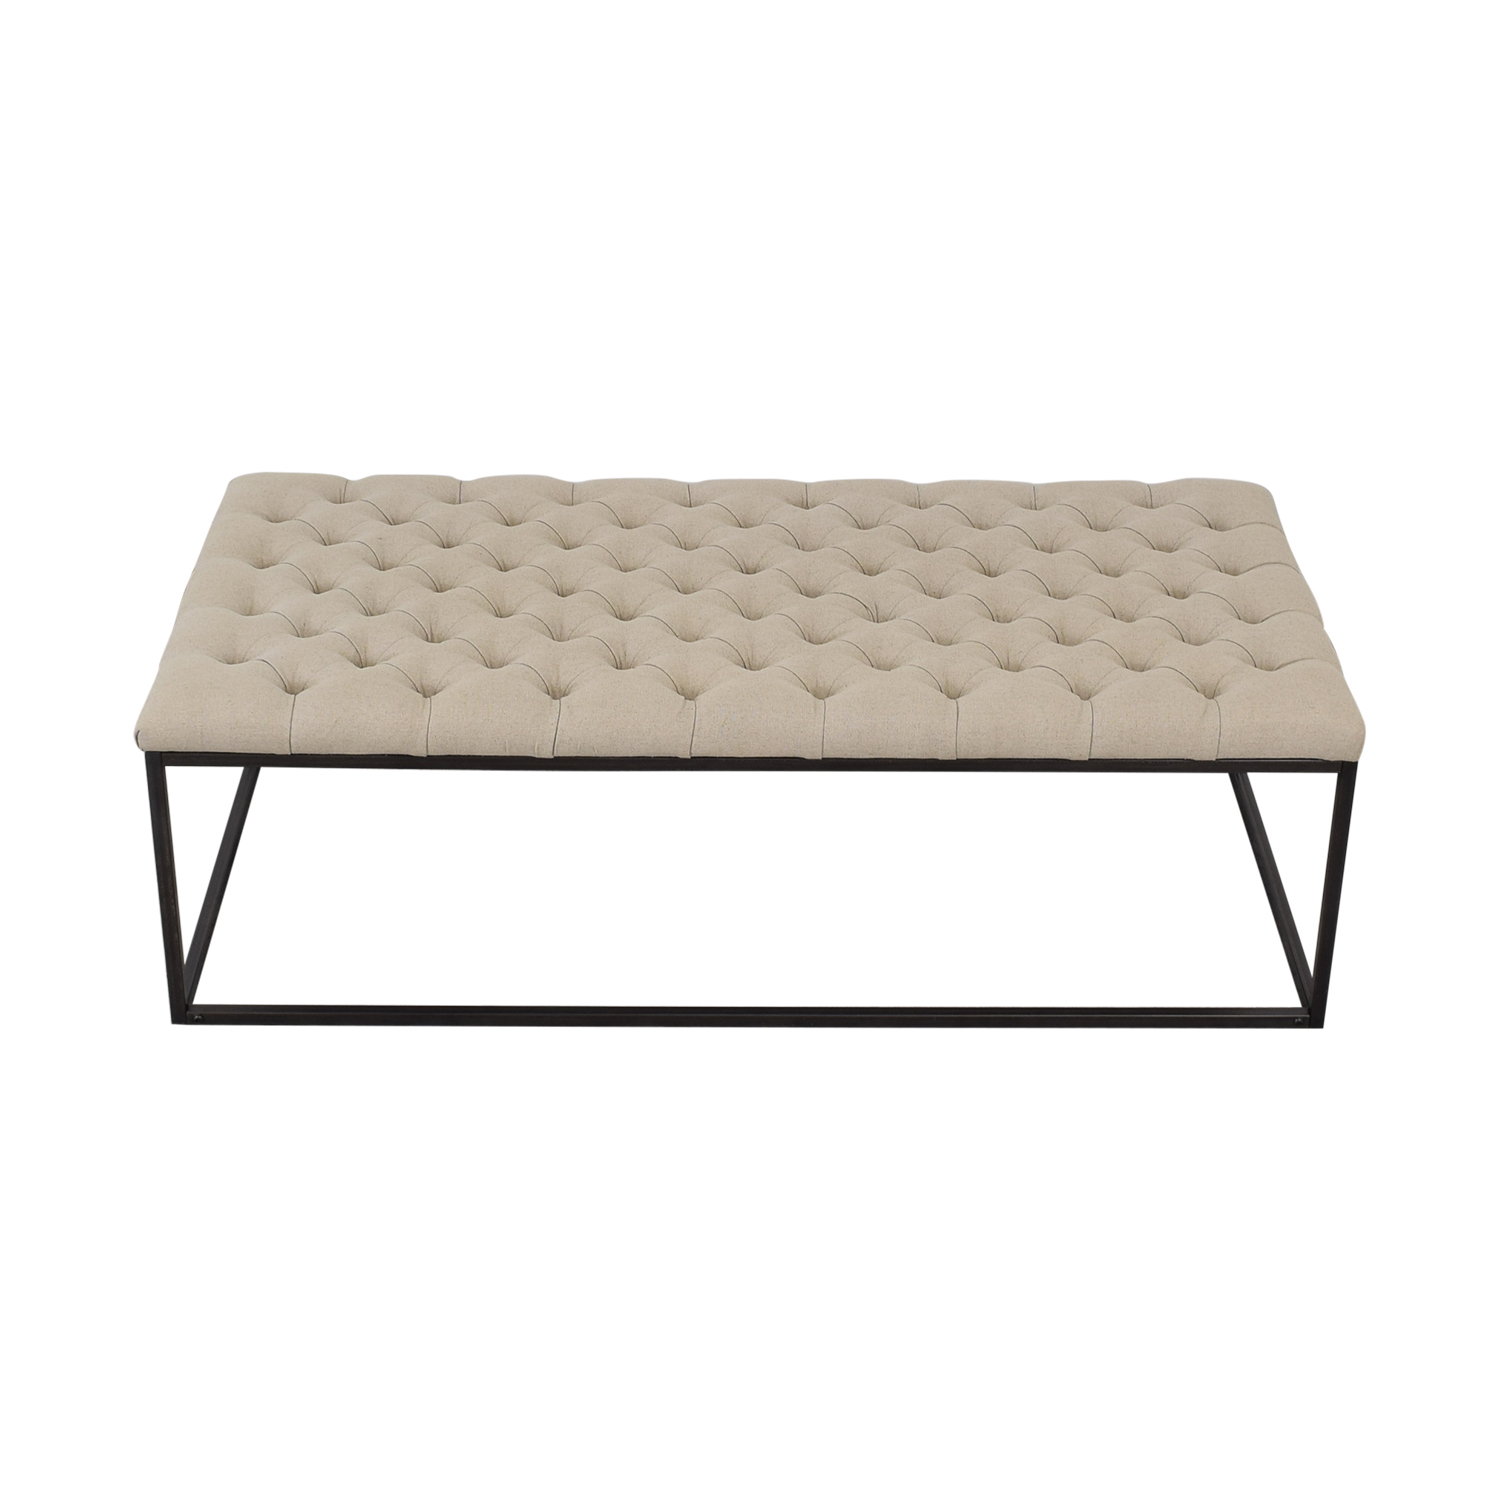 buy Classic Concepts Classic Concepts Tufted Ottoman Bench online